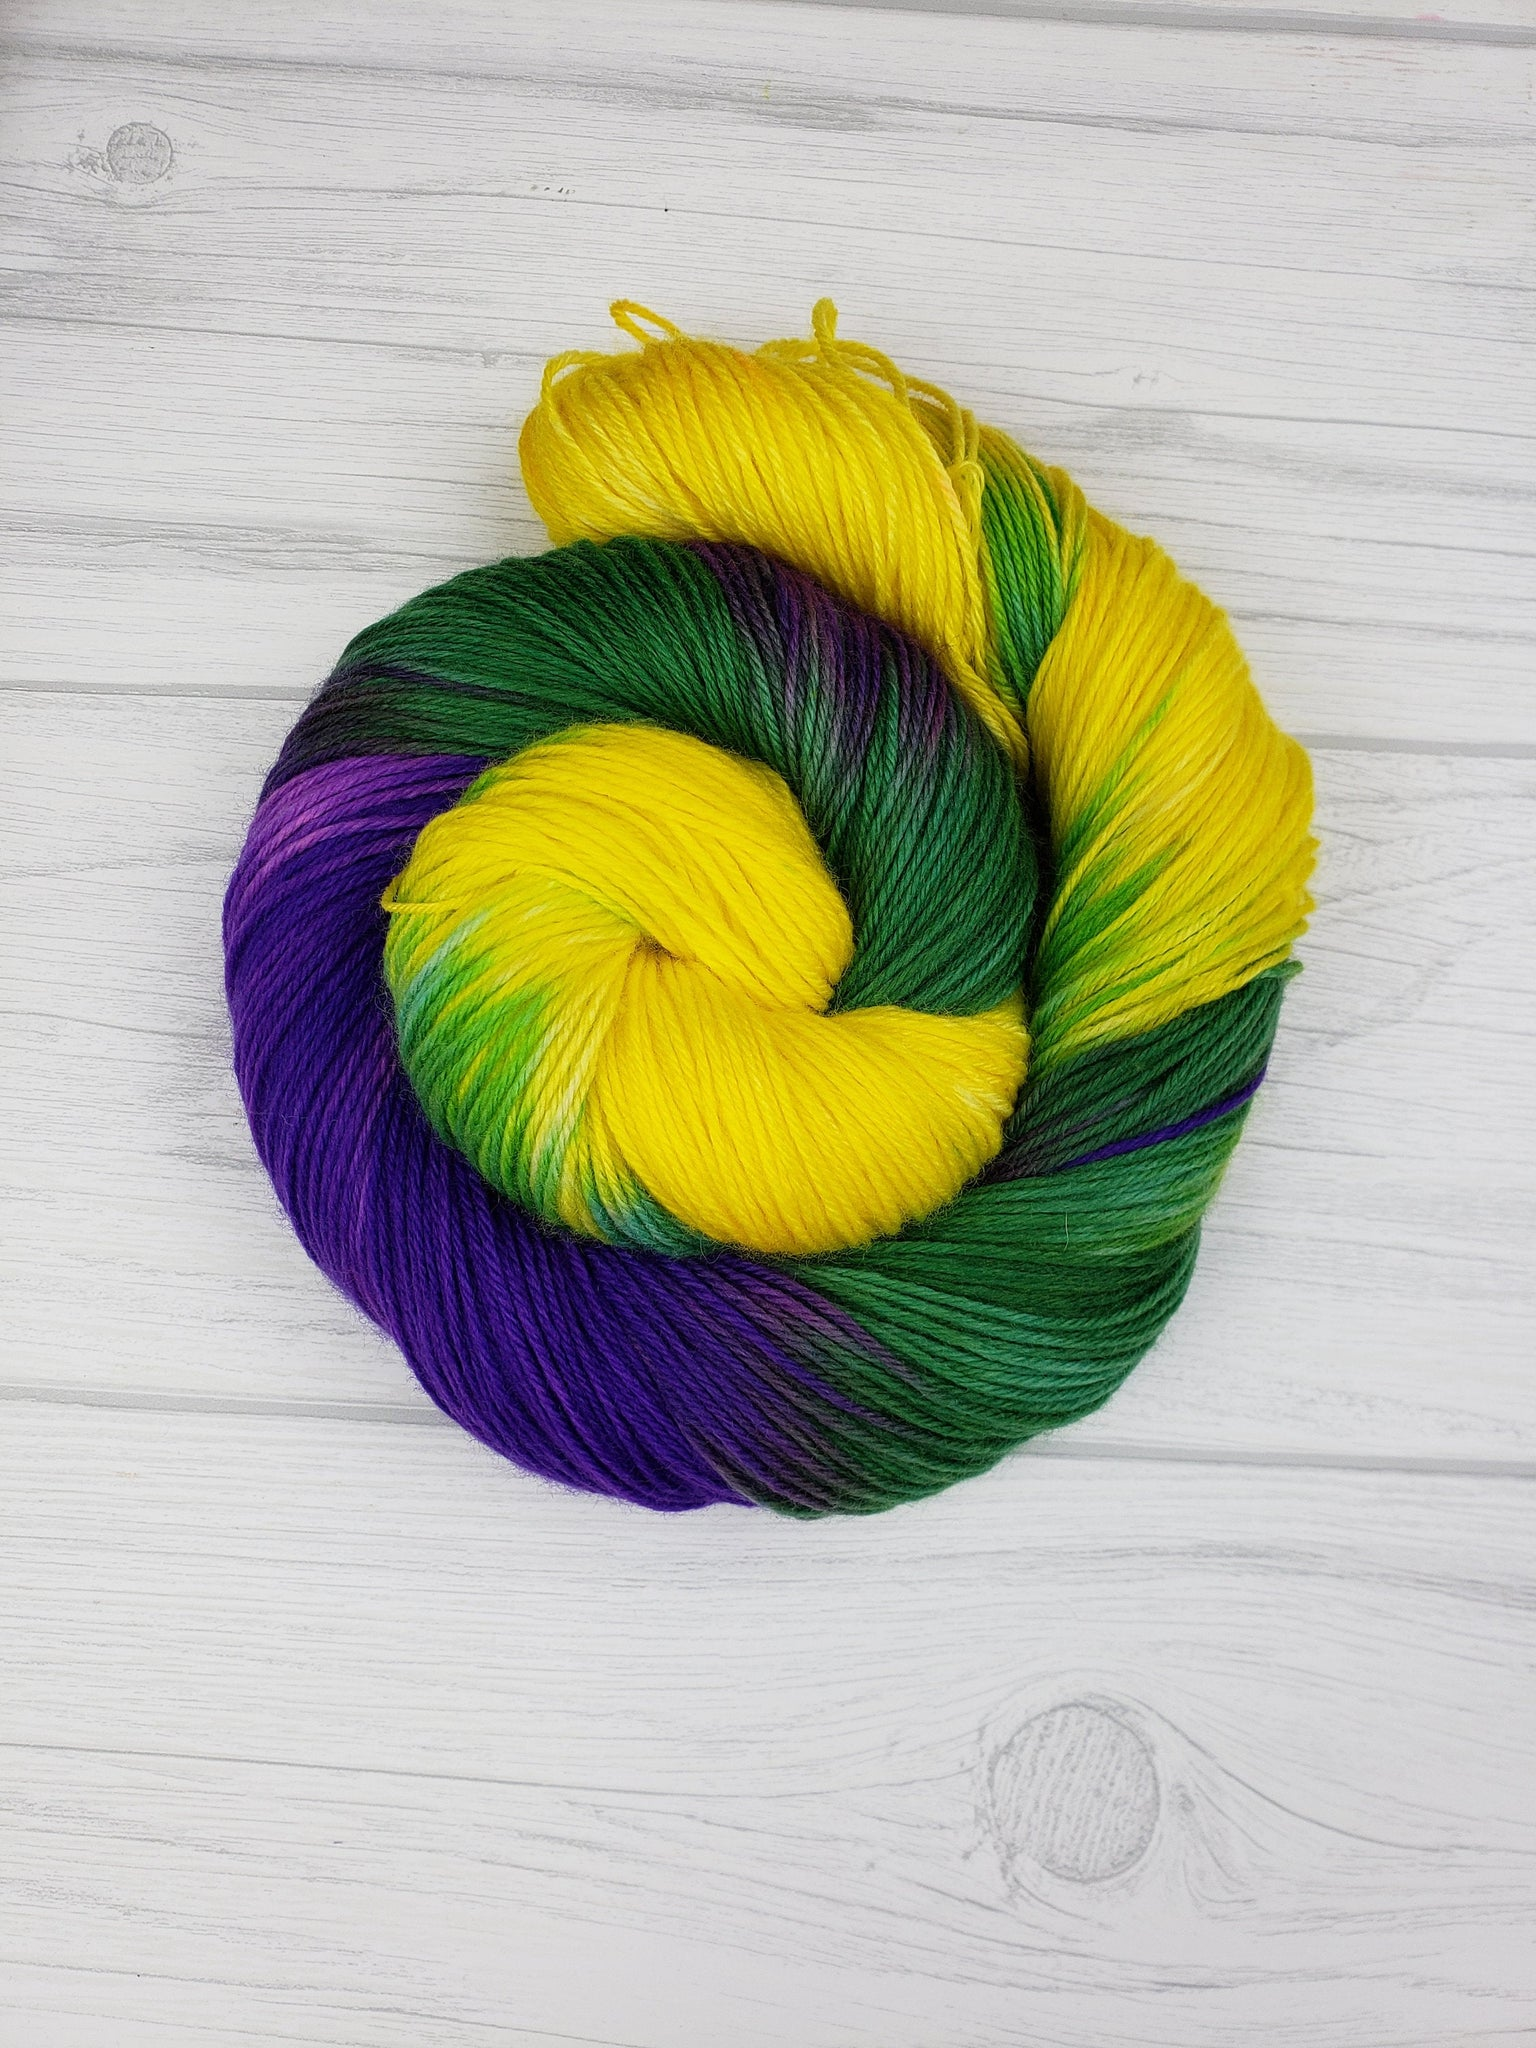 It's Mardi Gras Ya'll, Hand Dyed Yarn in DK Weight - Spindle warps yarns